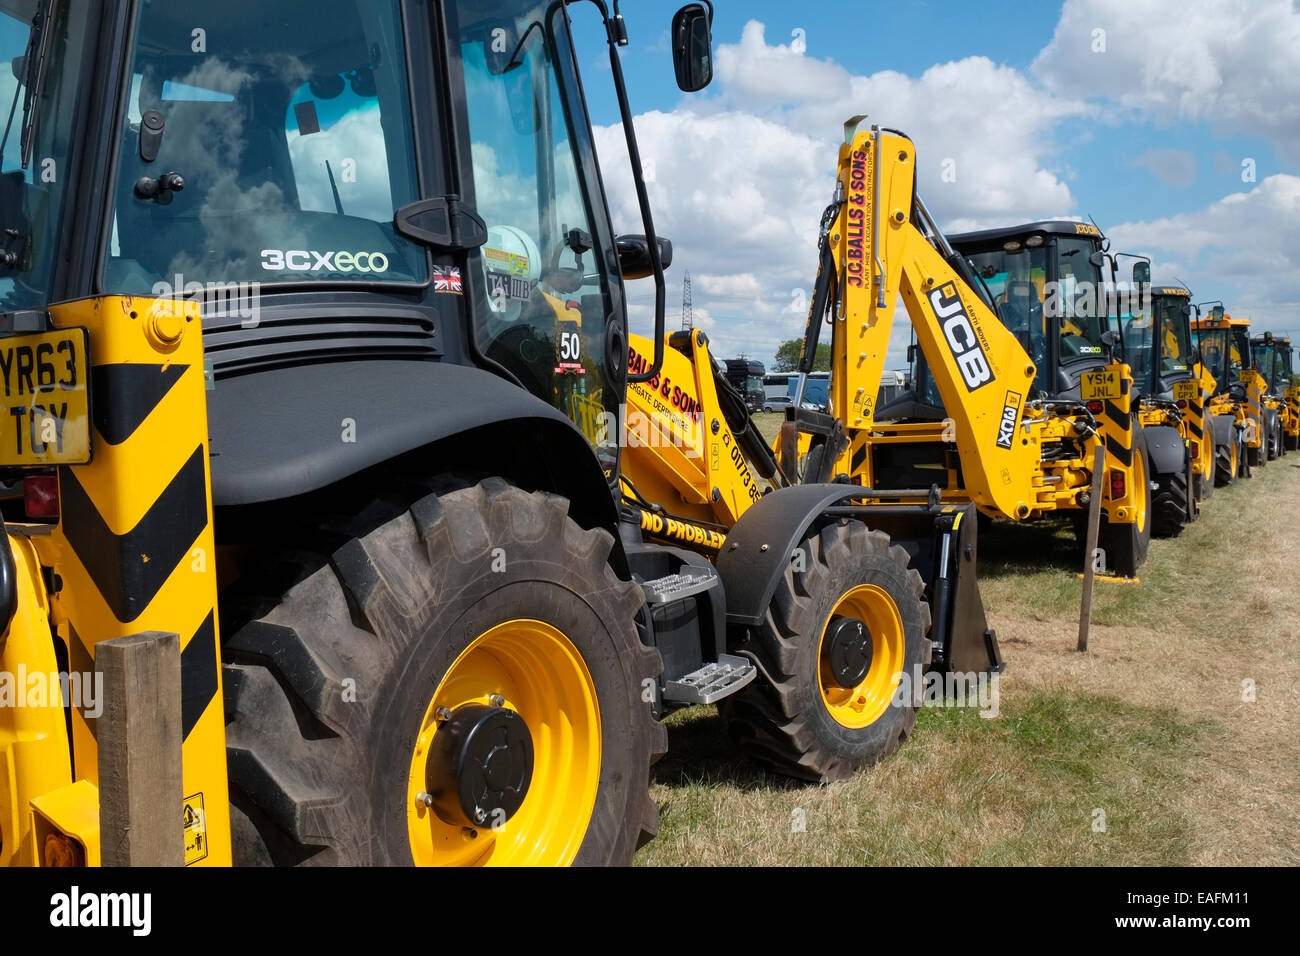 JCB diggers lined up at the Heckington Show, Lincolnshire, England. - Stock Image